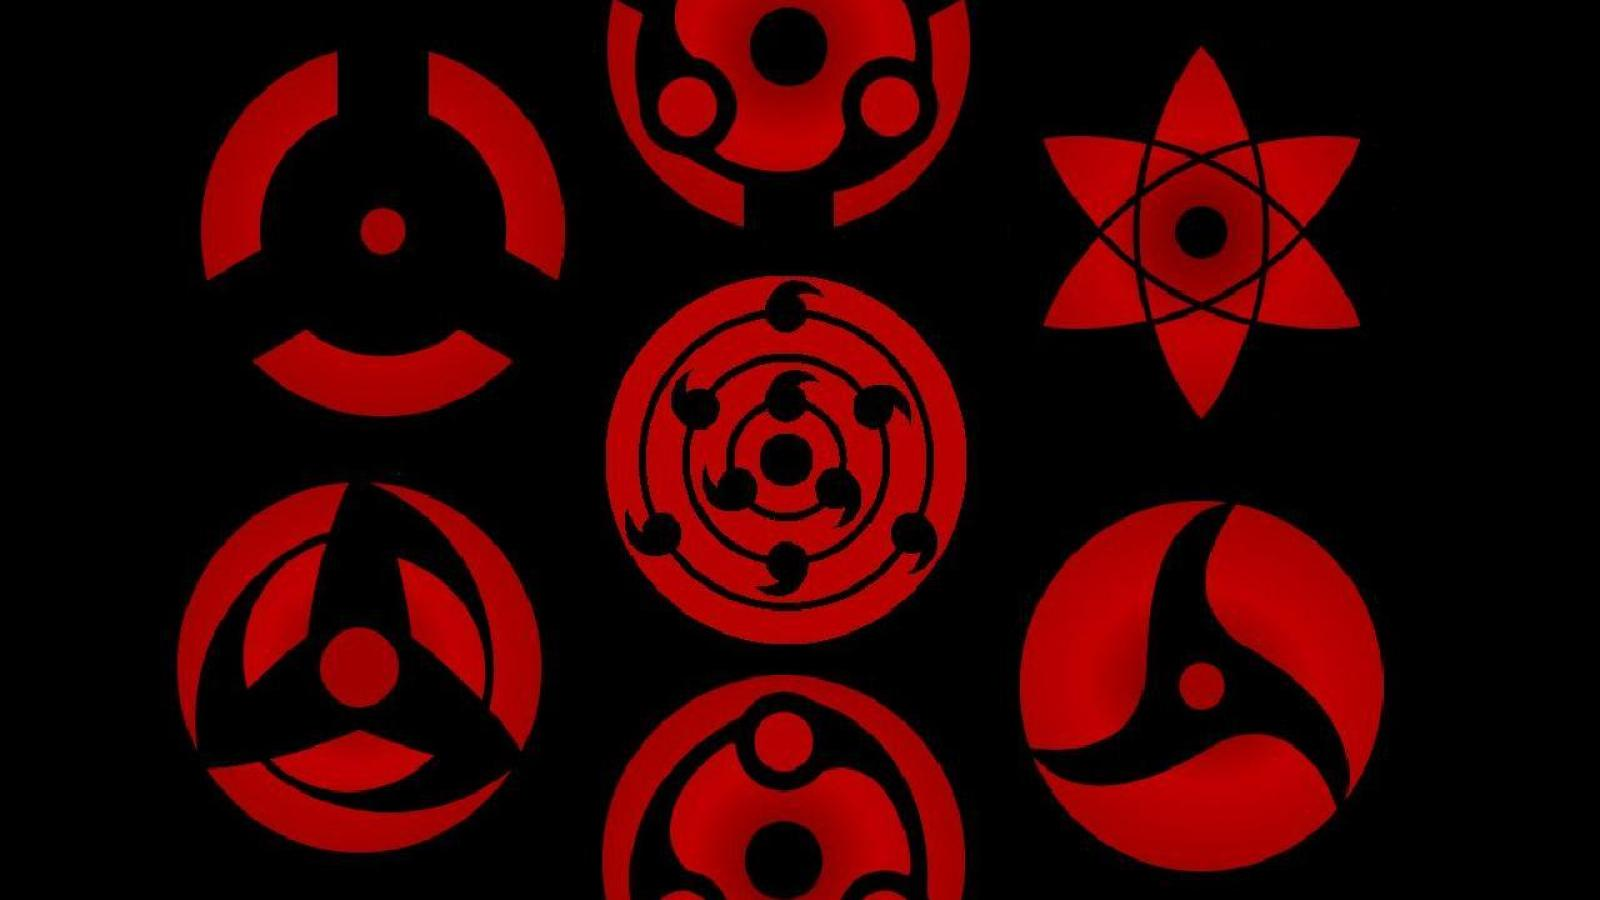 Sharingan Wallpaper HD - WallpaperSafari